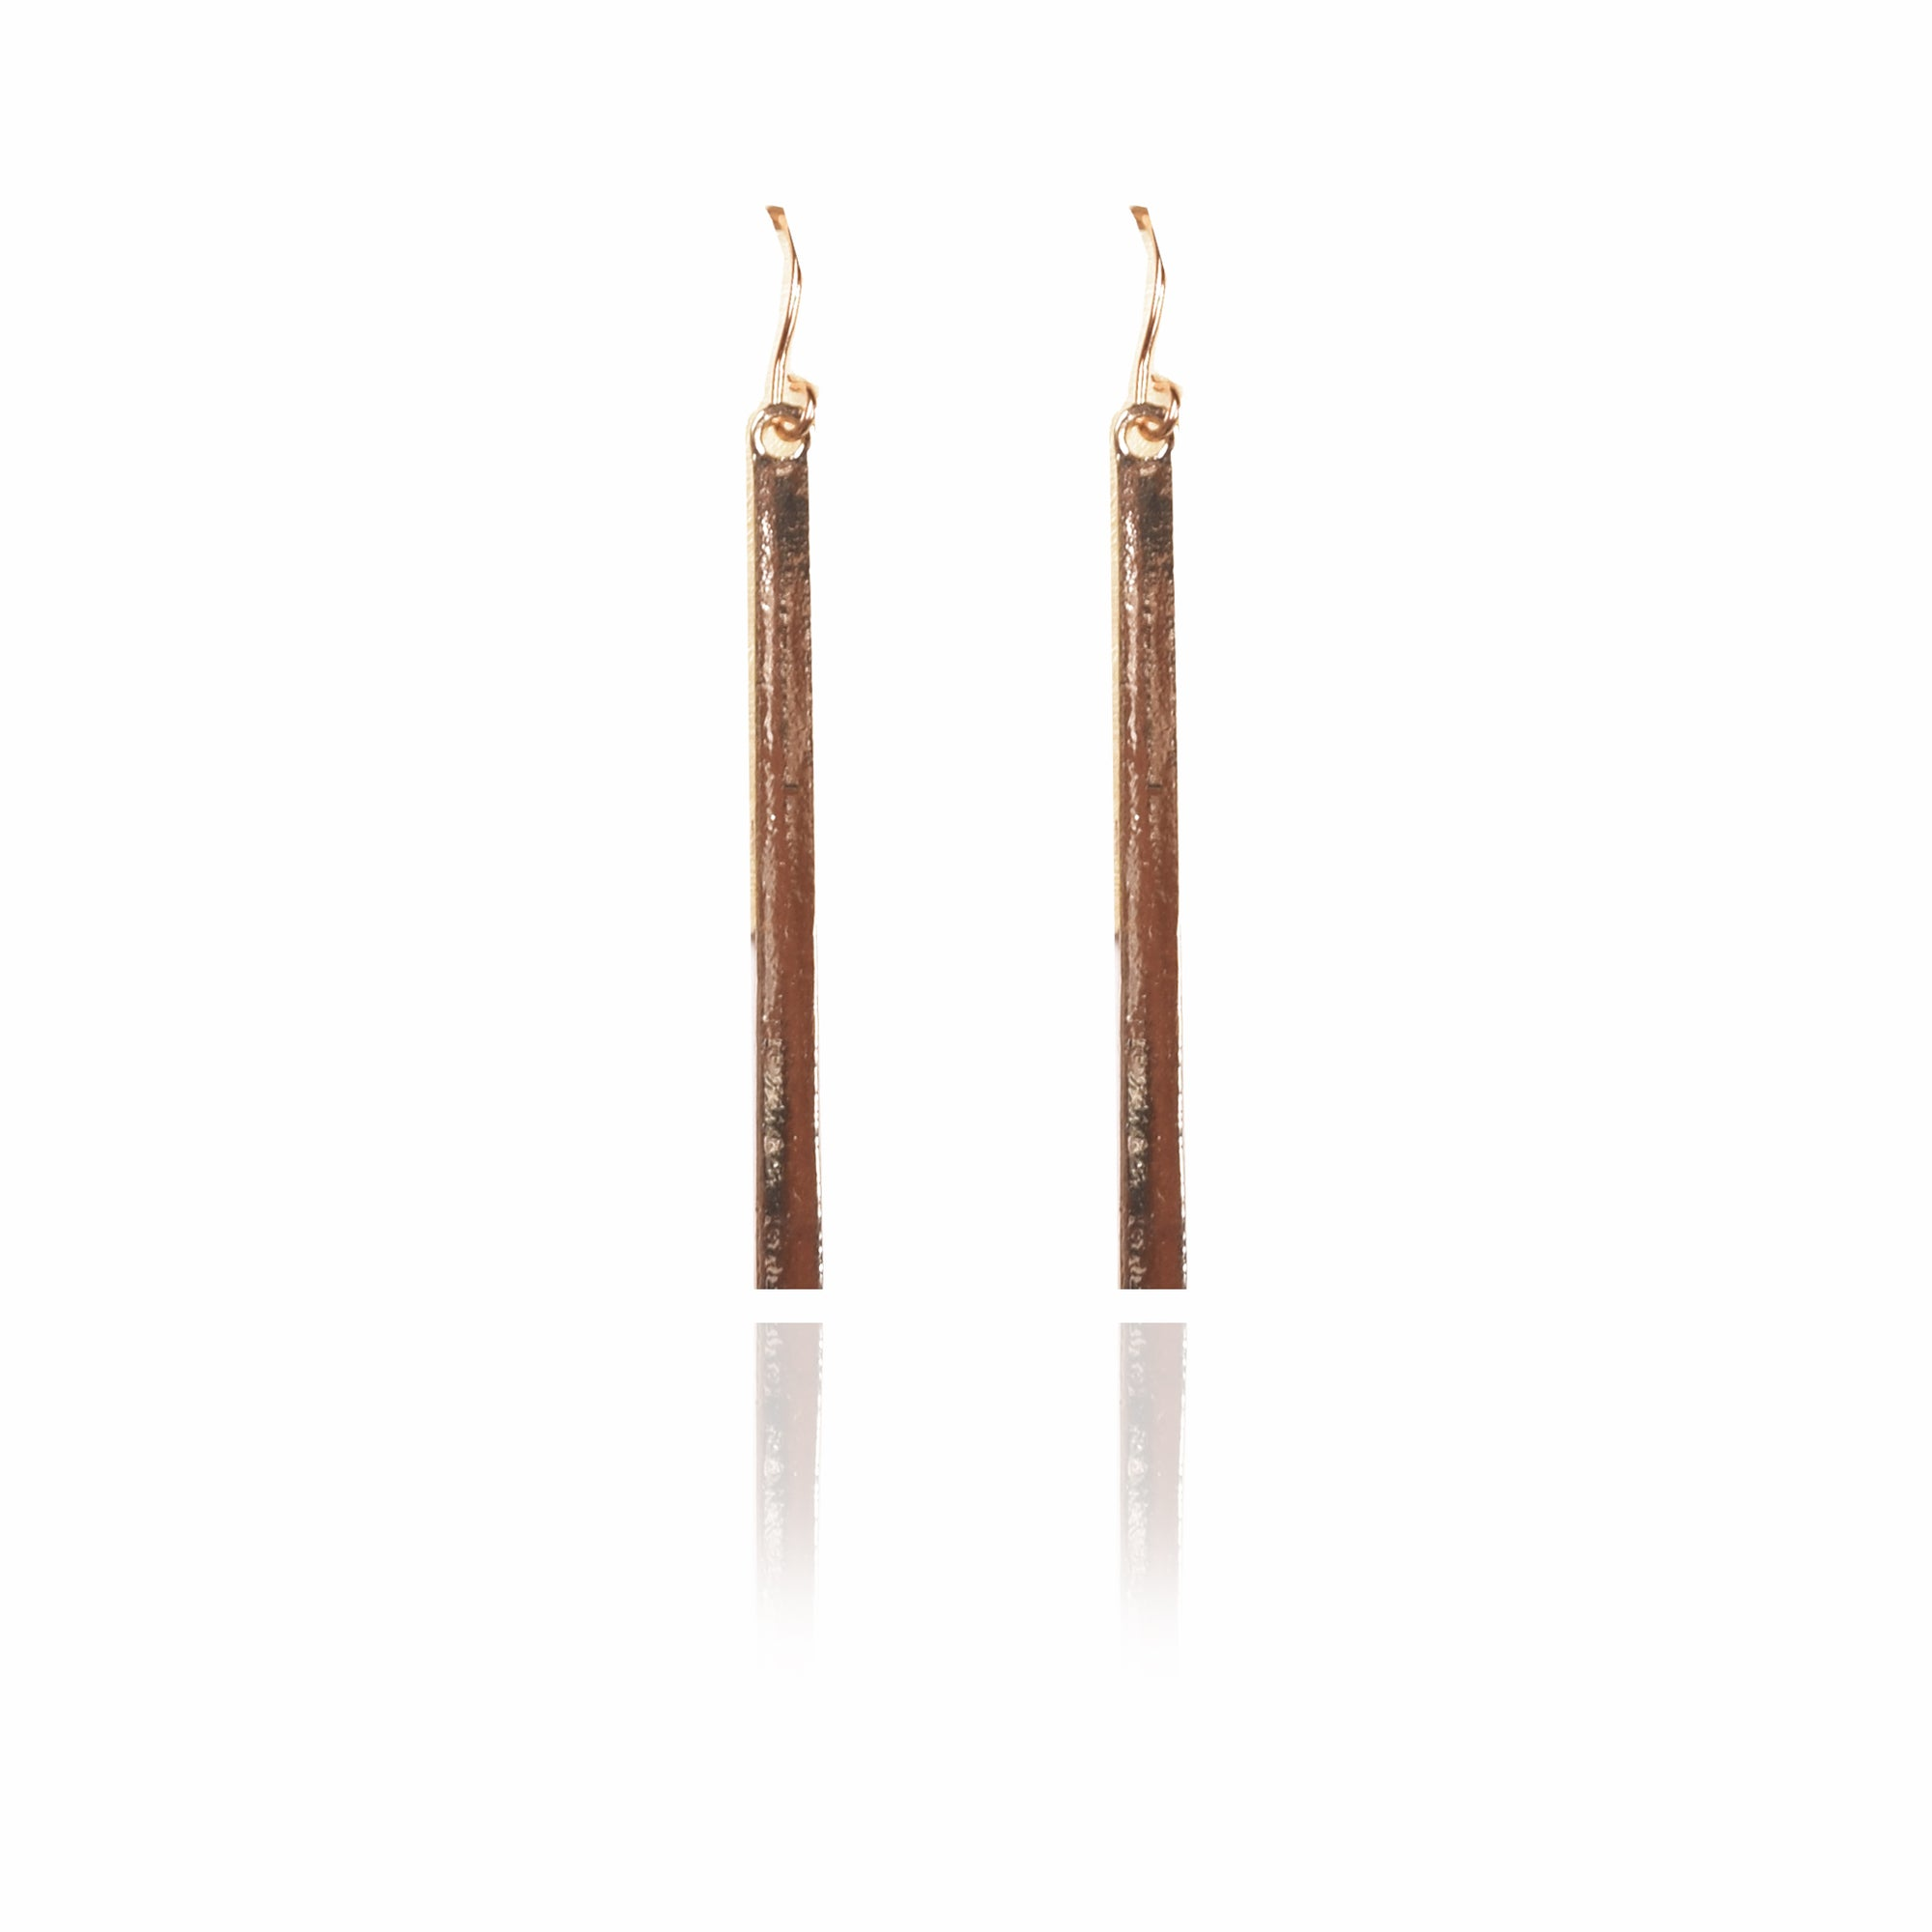 Stylish Golden Starling Earring For Women-NA5274